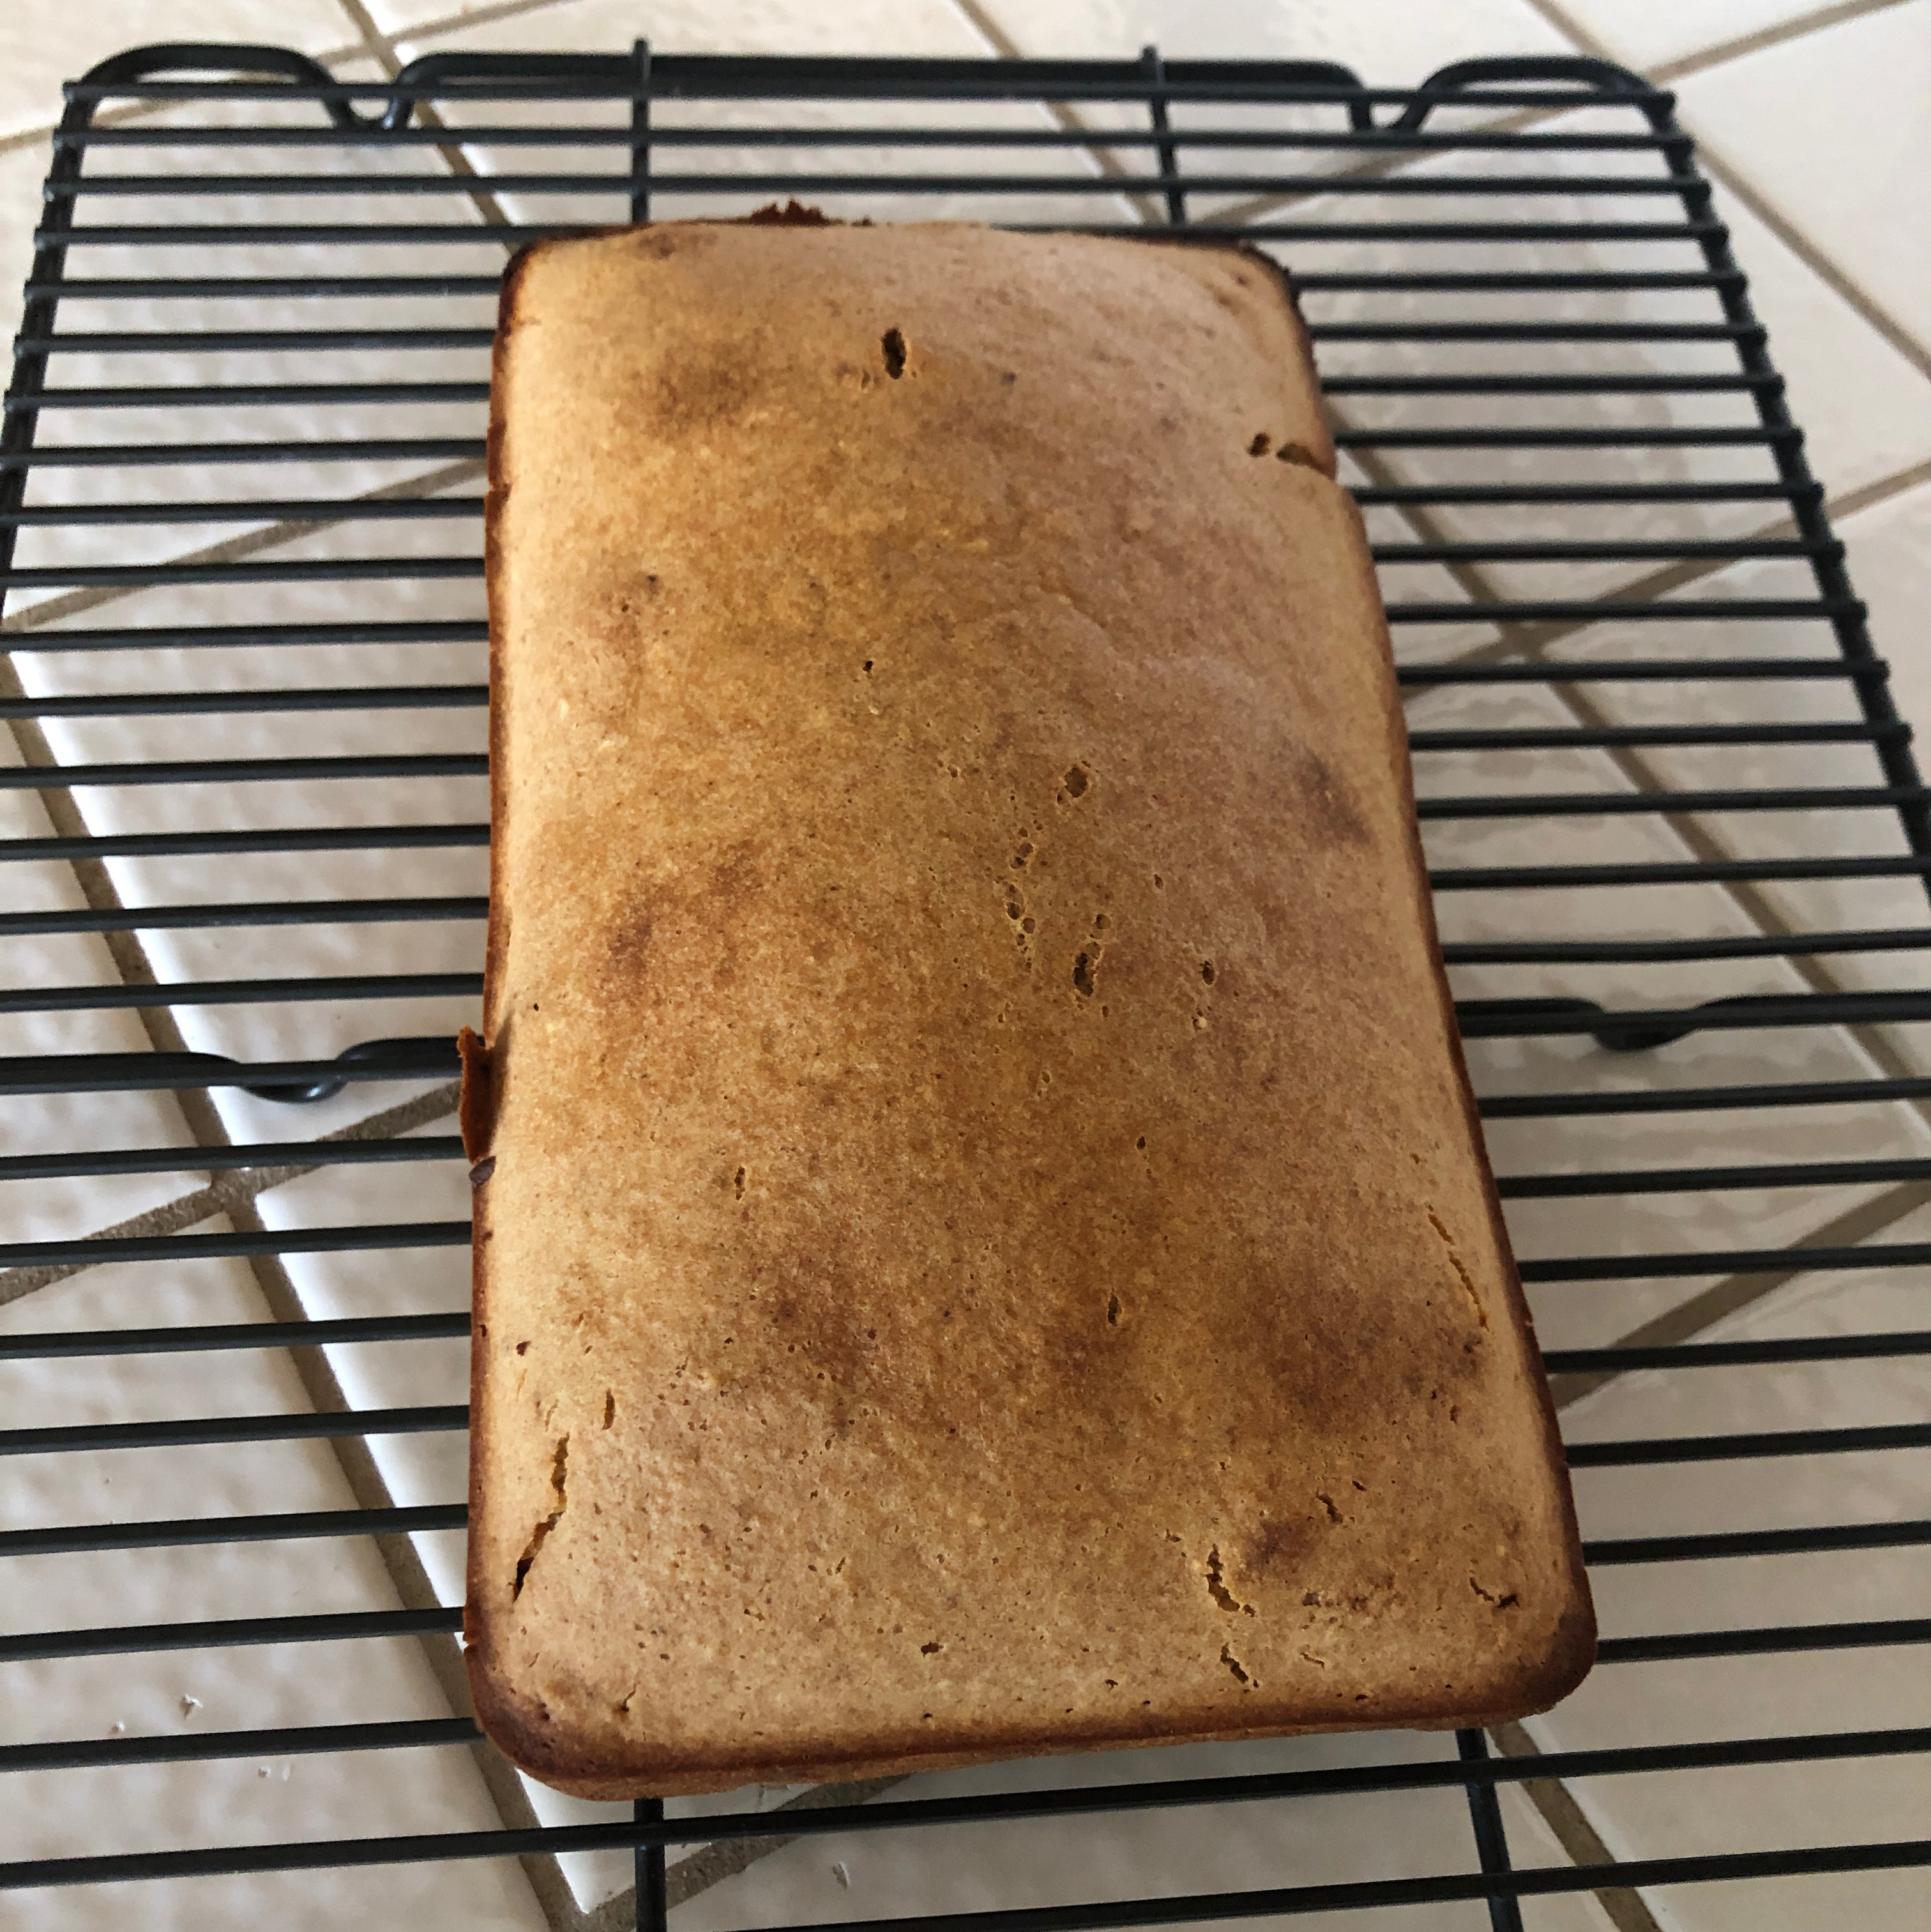 Delicious Gluten-Free Buckwheat and Millet Bread susanhf212